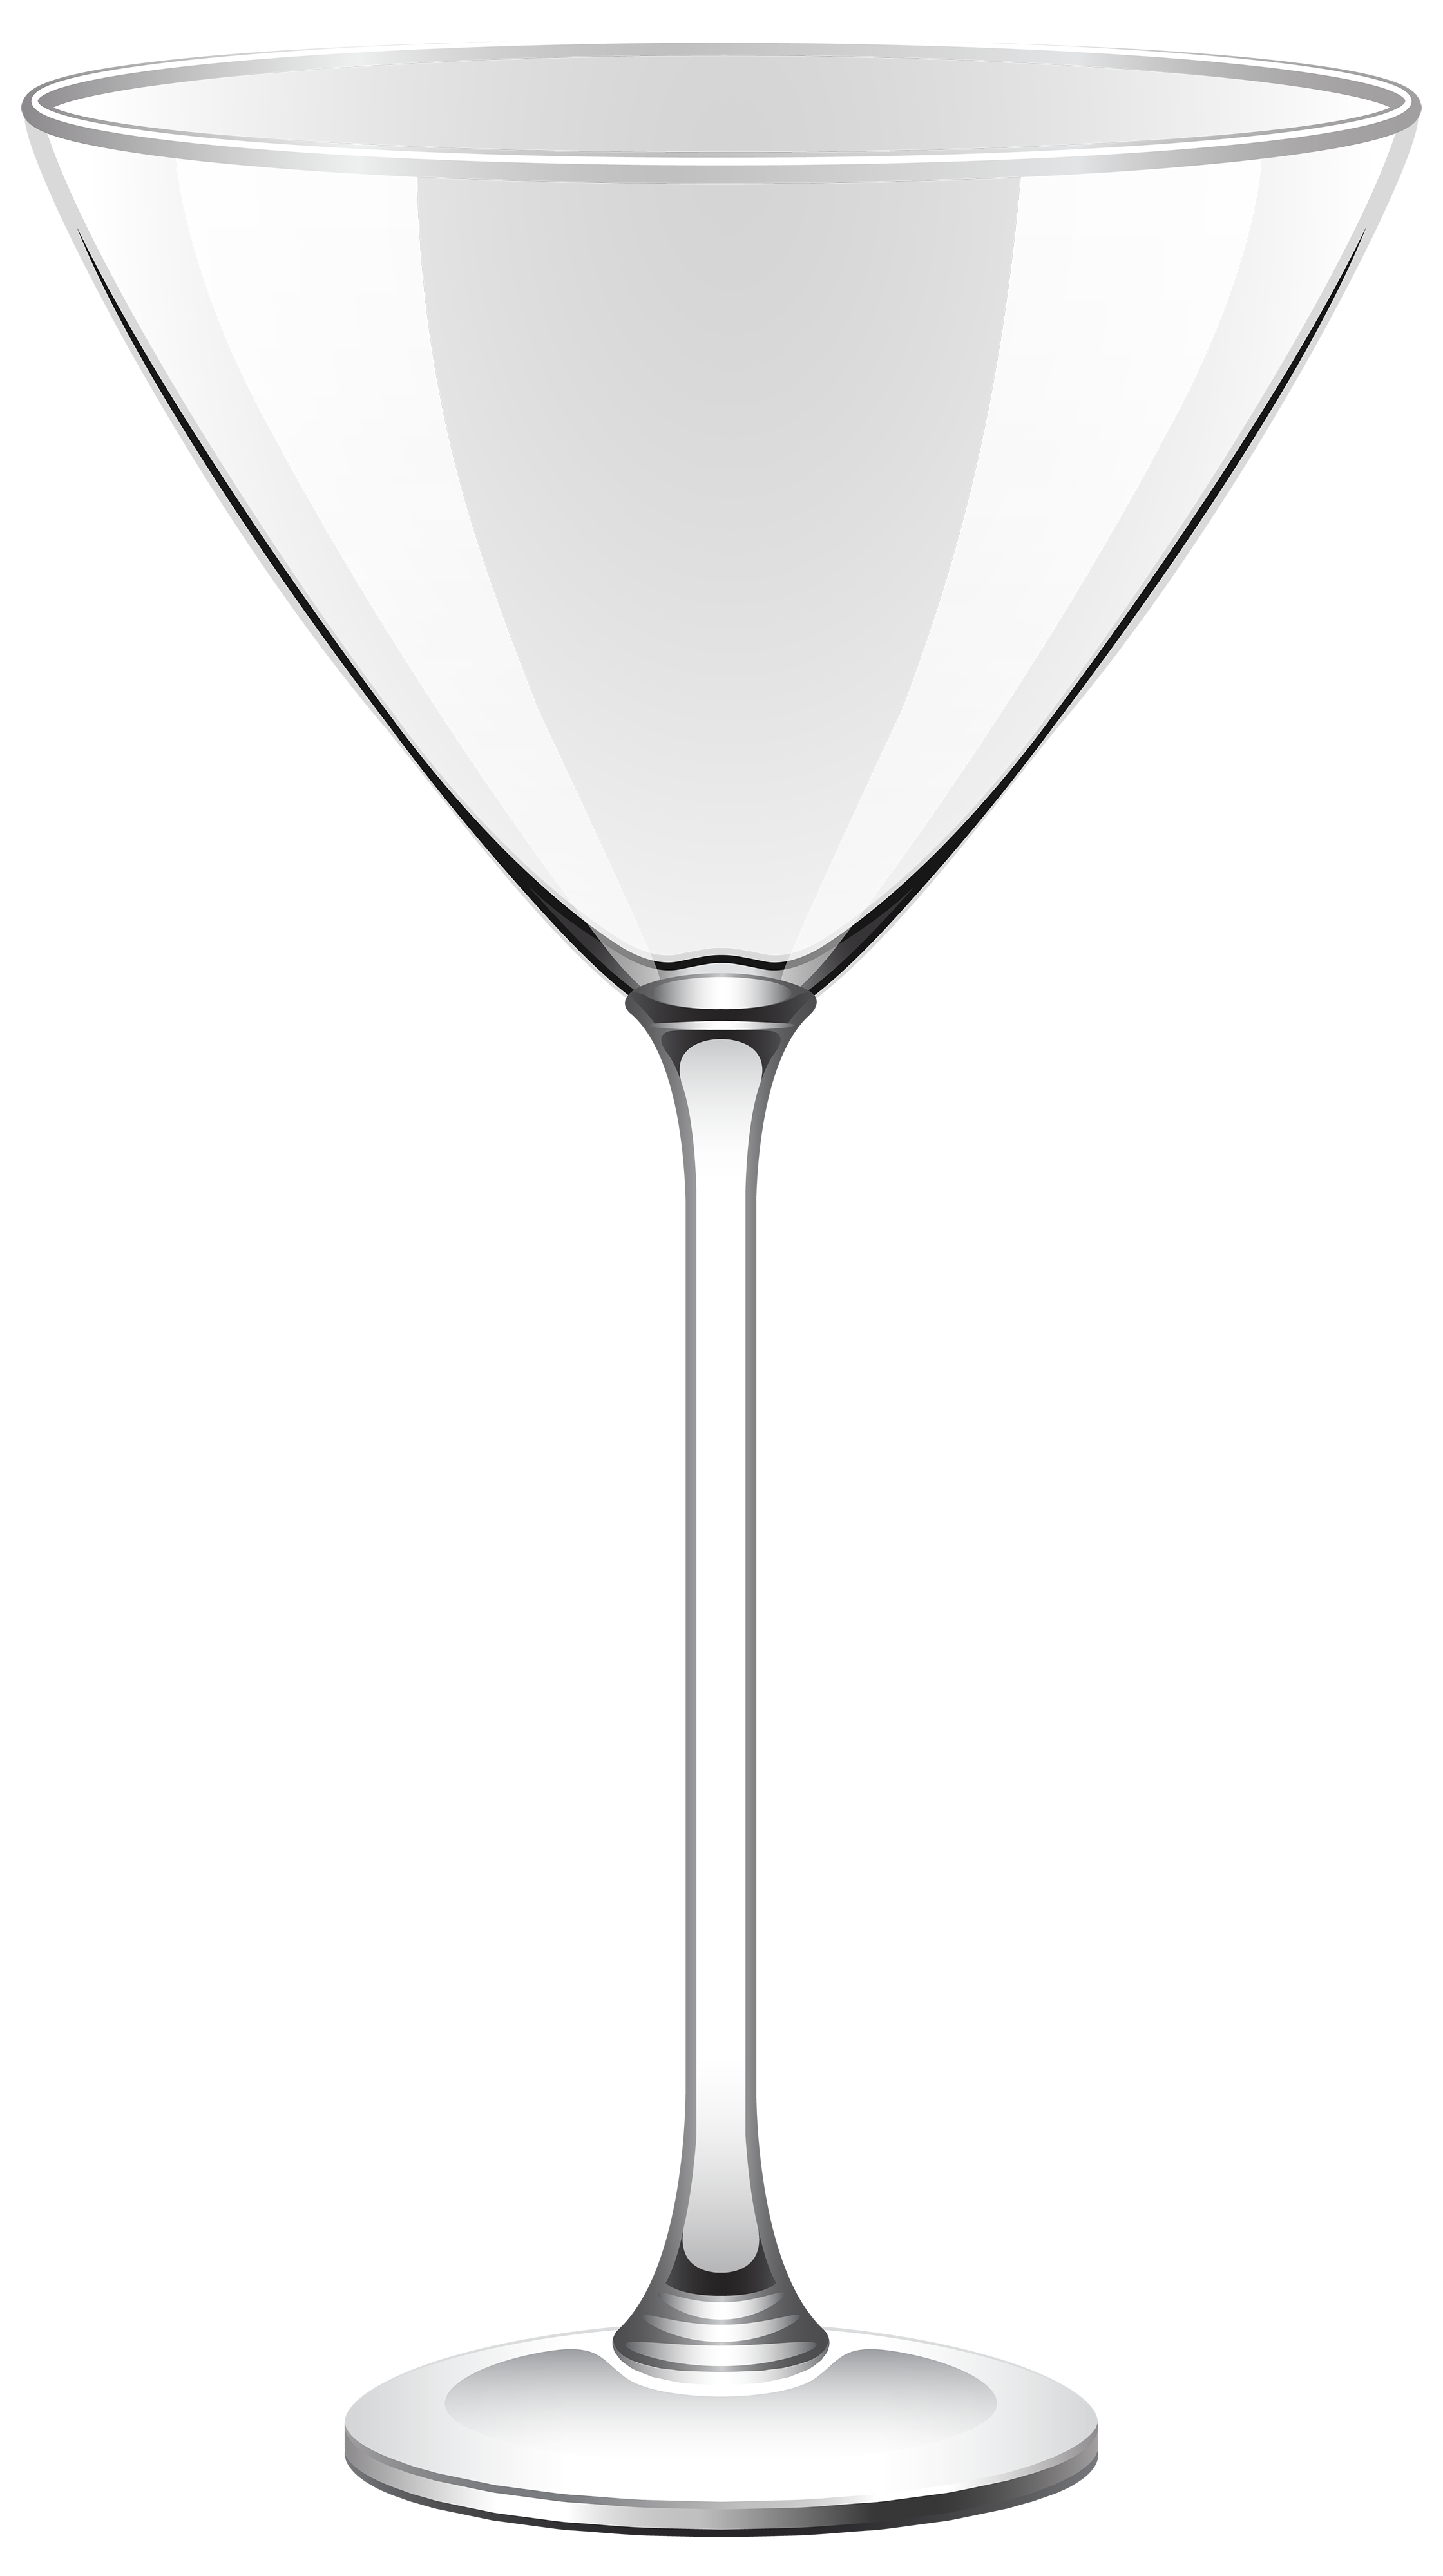 Transparent Cocktail Glass PNG Clipart.